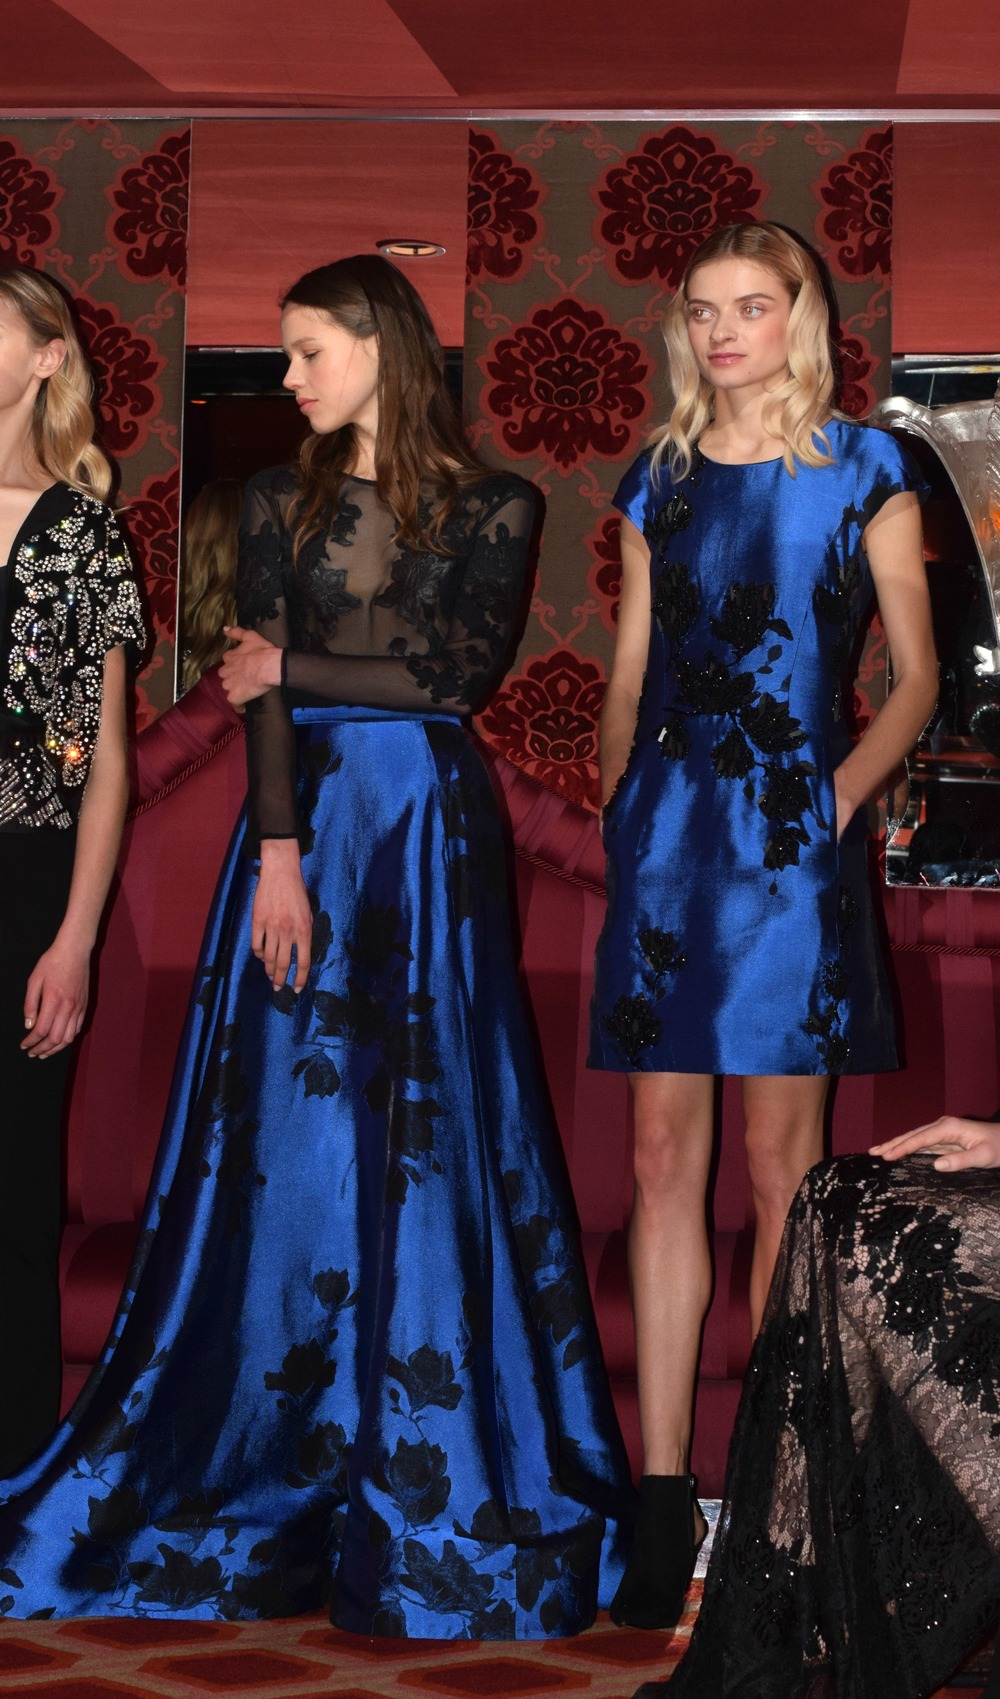 NYFW Josie Natori Fashion Presentation Fall:Winter 2016 Louboutins & Love Fashion Blog Esther Santer NYC Street Style Runway Models Collection Hair Beauty Inspo Press Event Coverage Photos Details Dress Gown Beautiful Pretty Shop Trends Gorgeous Blue.jpg